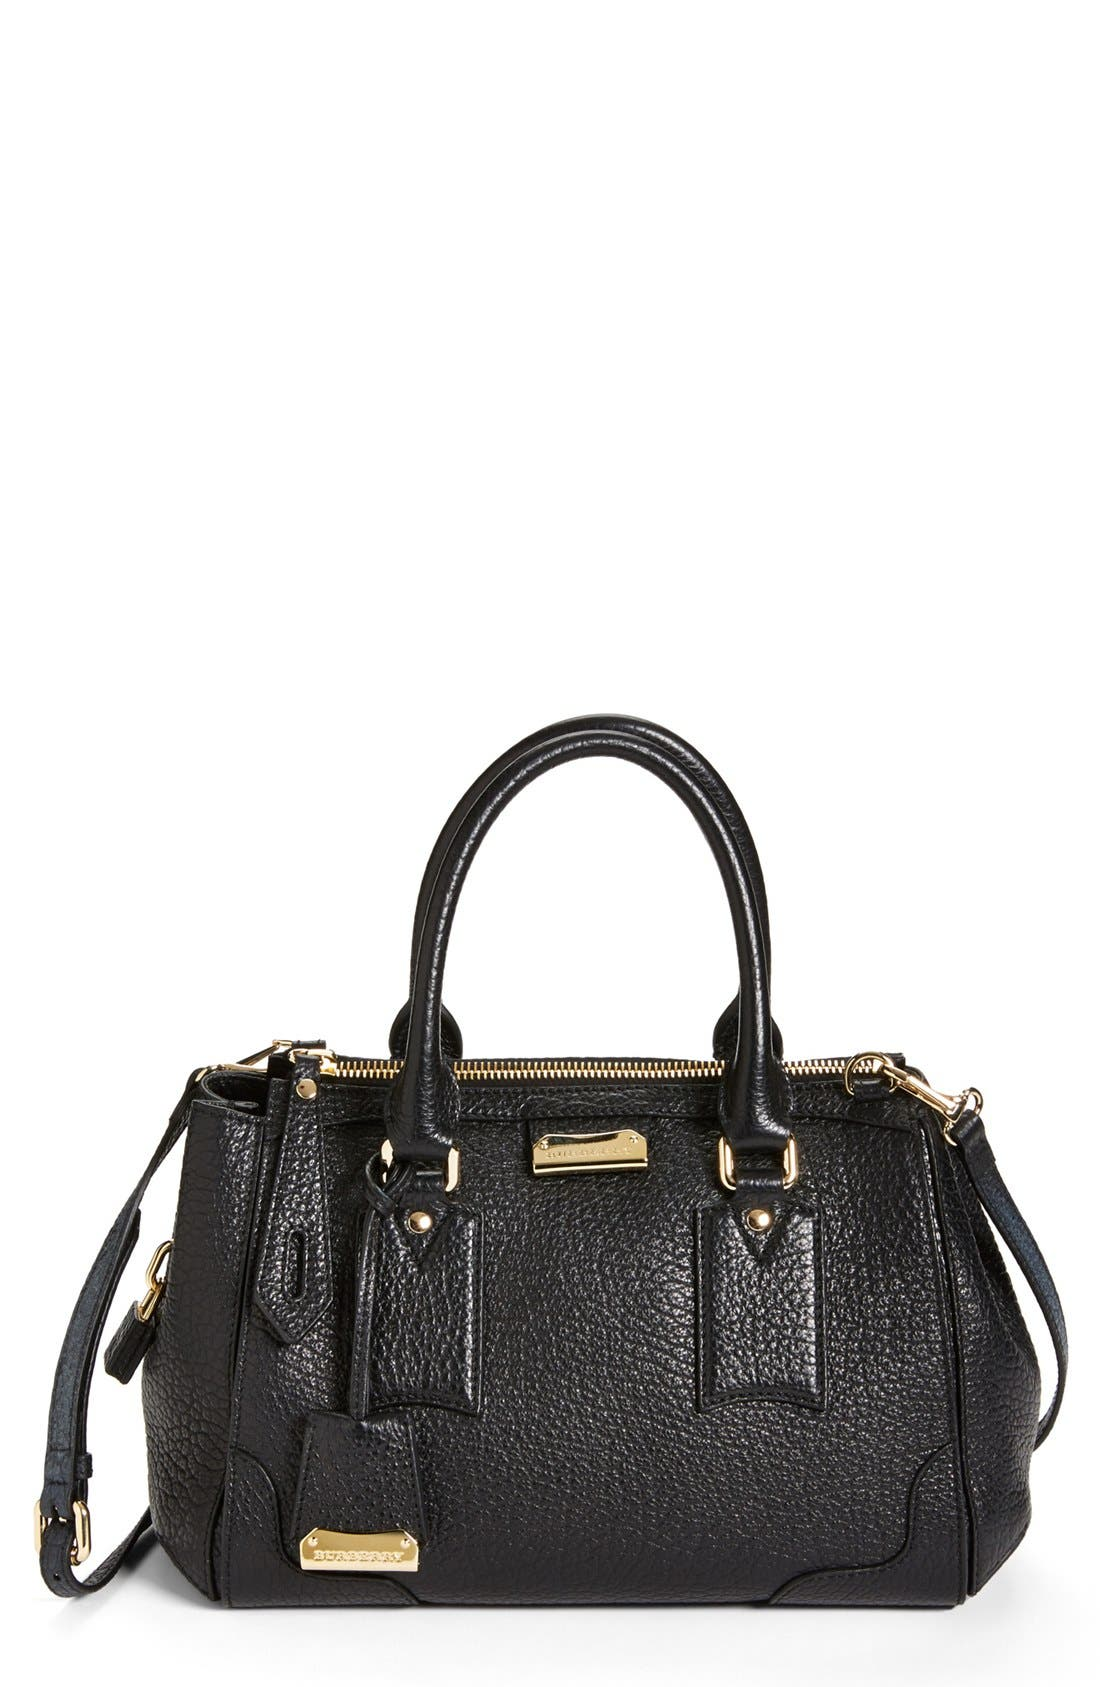 Alternate Image 1 Selected - Burberry 'Gladstone - Small' Leather Satchel